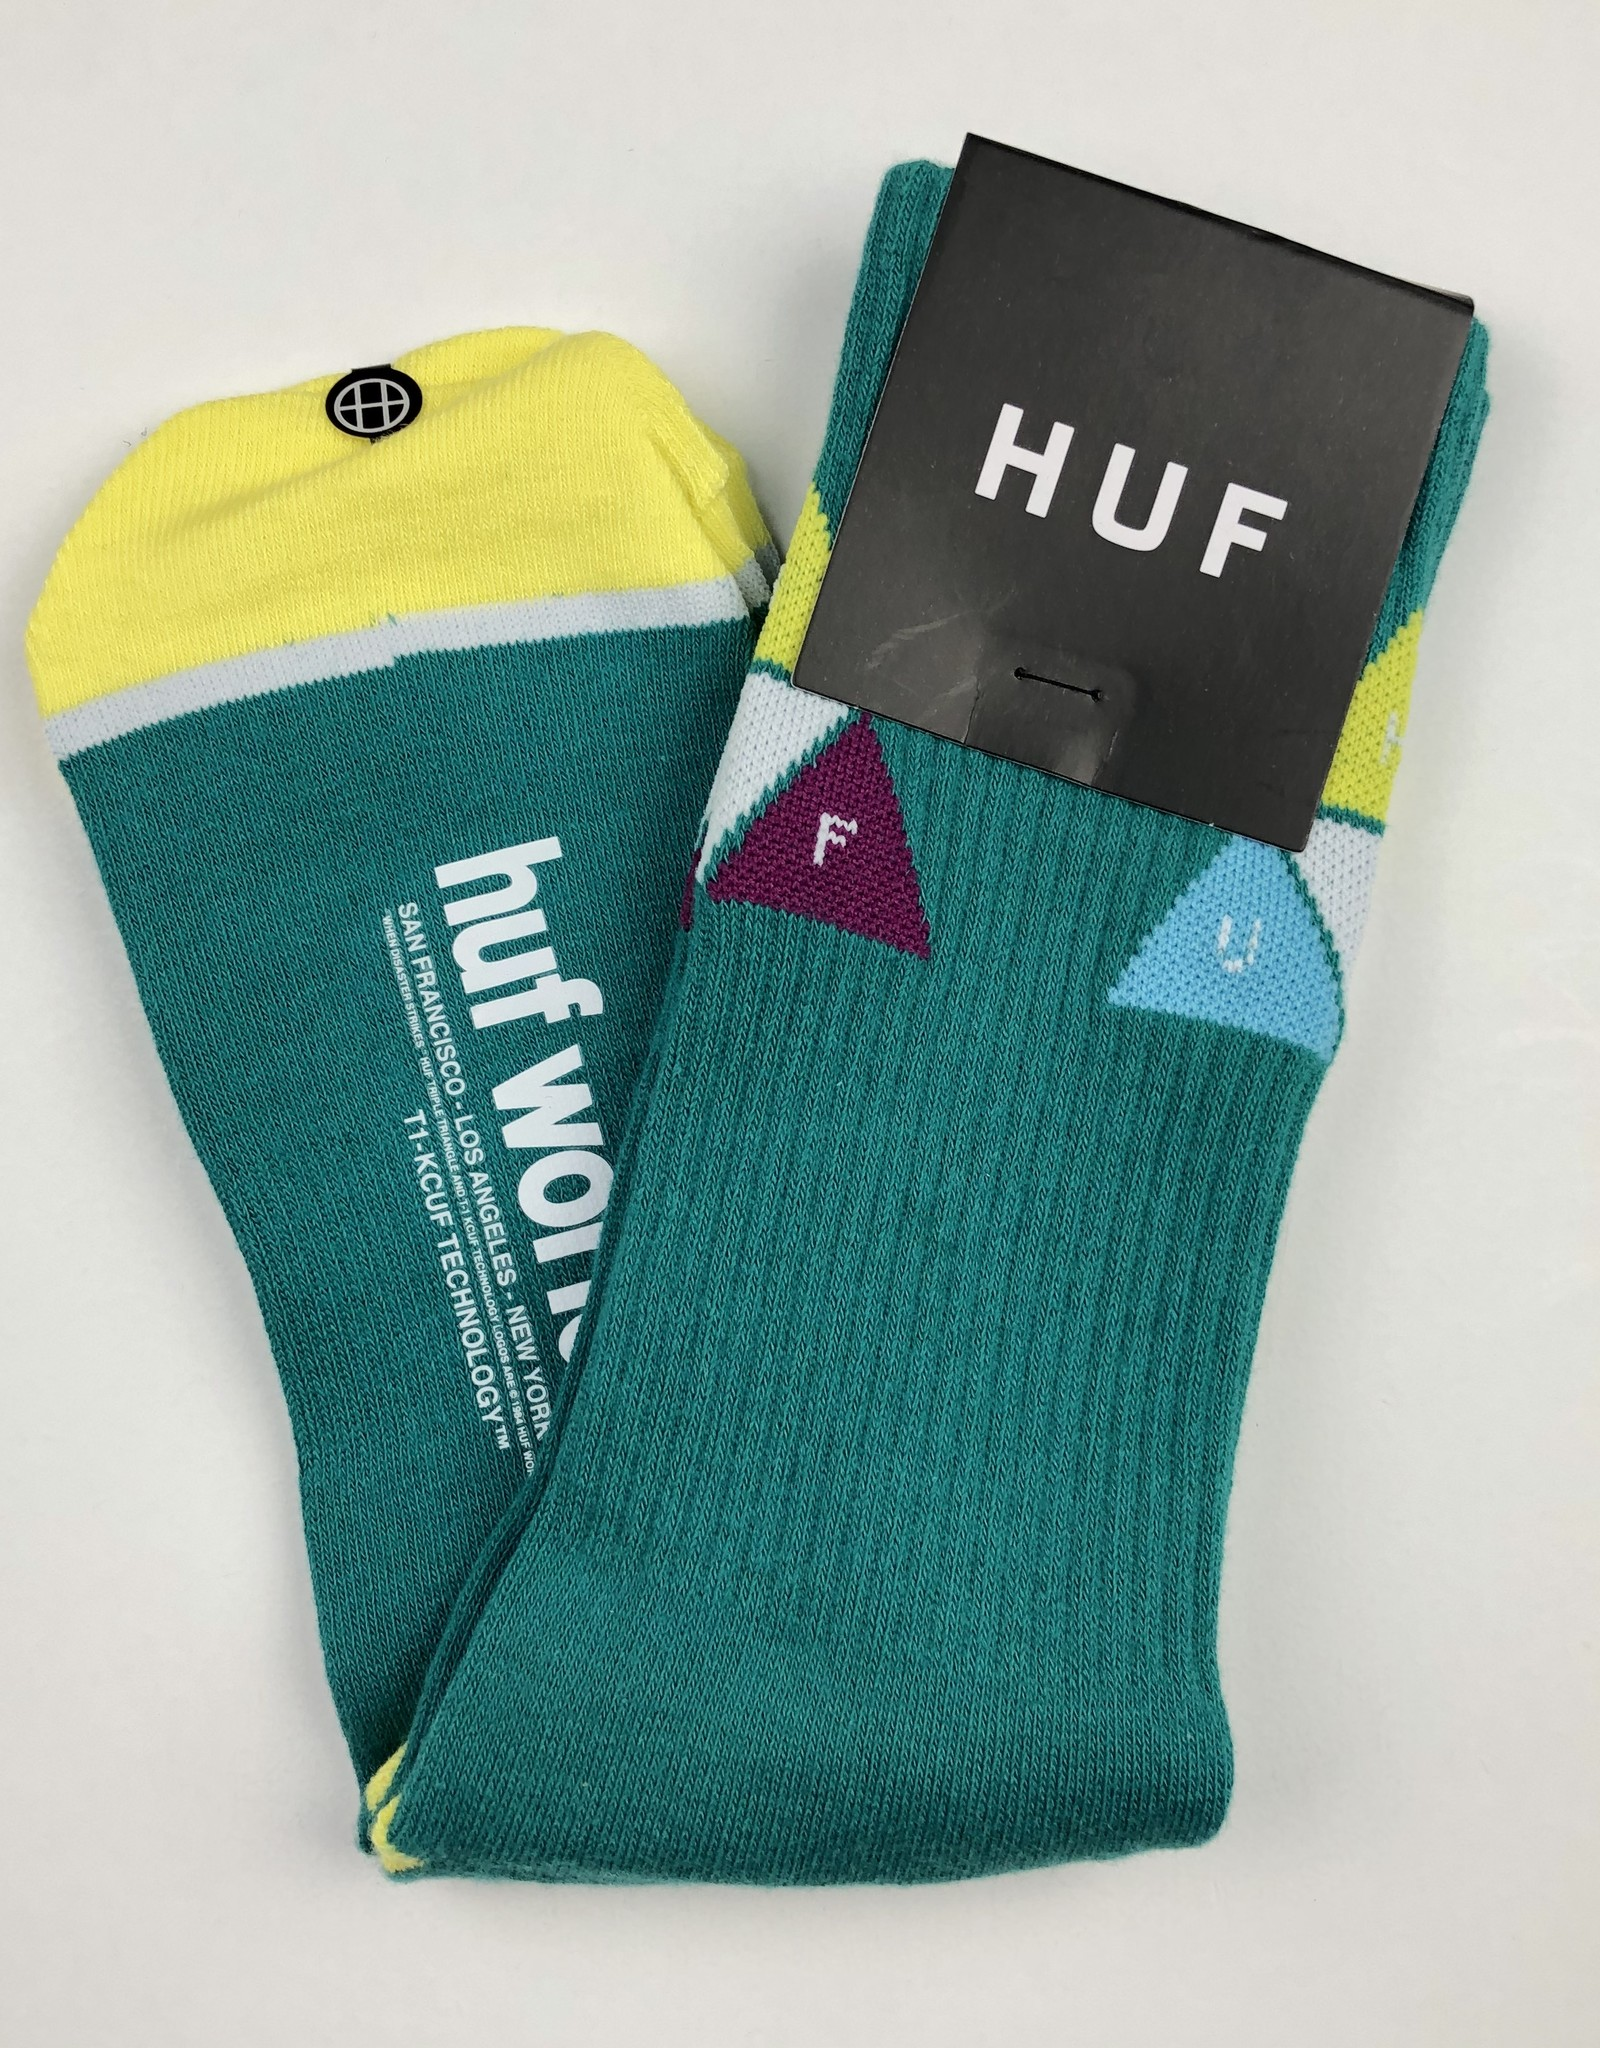 HUF PRISM TRIANGLE SOCK - (ALL COLORS)